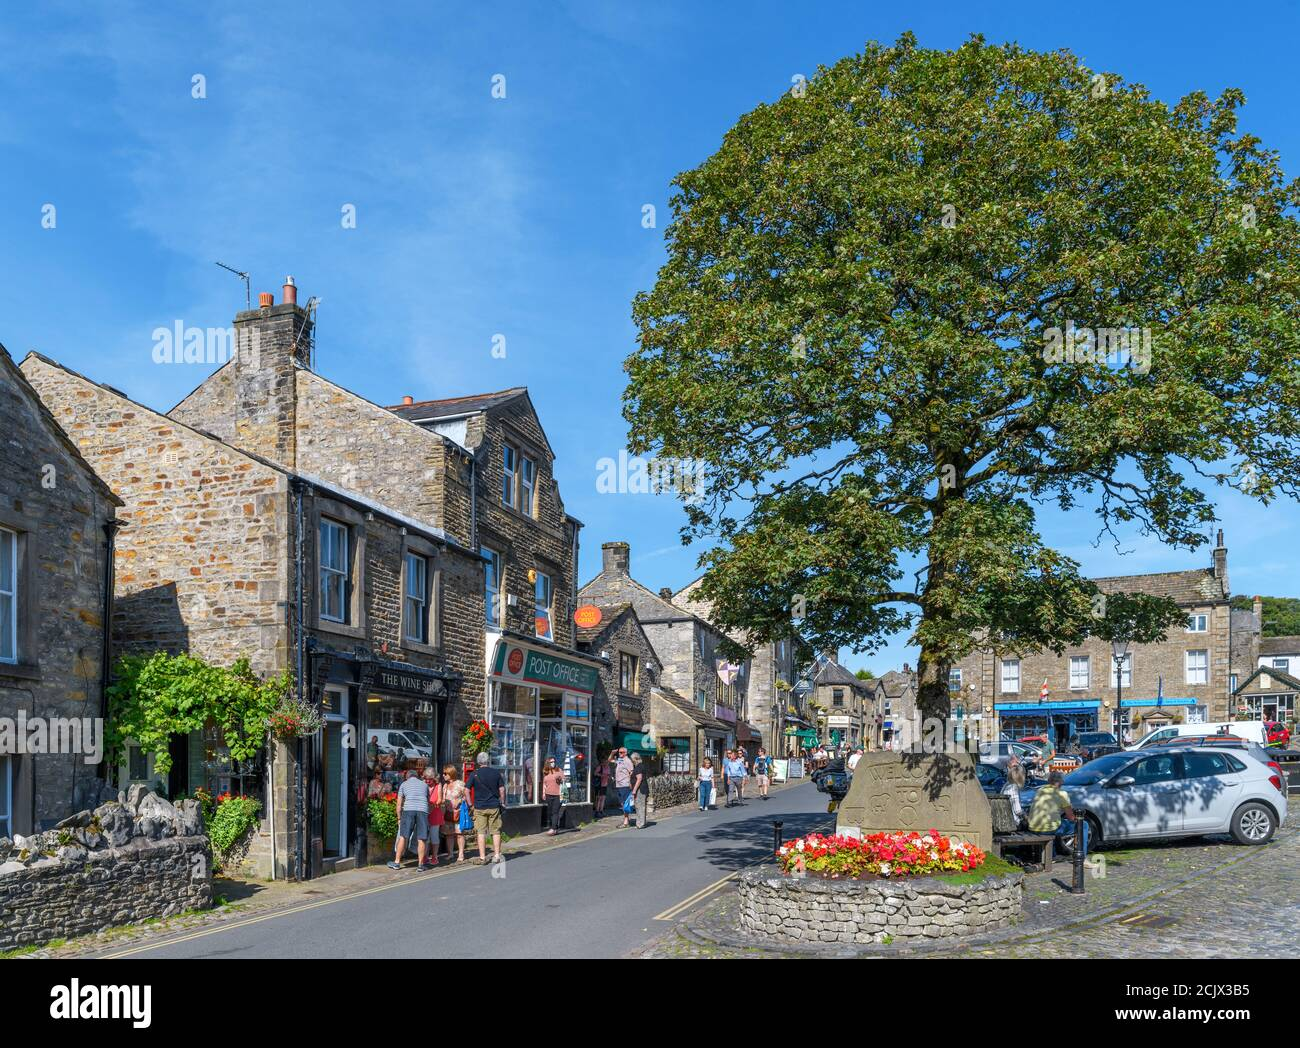 The Square and Main Street in the traditional English village of Grassington, Yorkshire Dales National Park, North Yorkshire, England, UK. Stock Photo